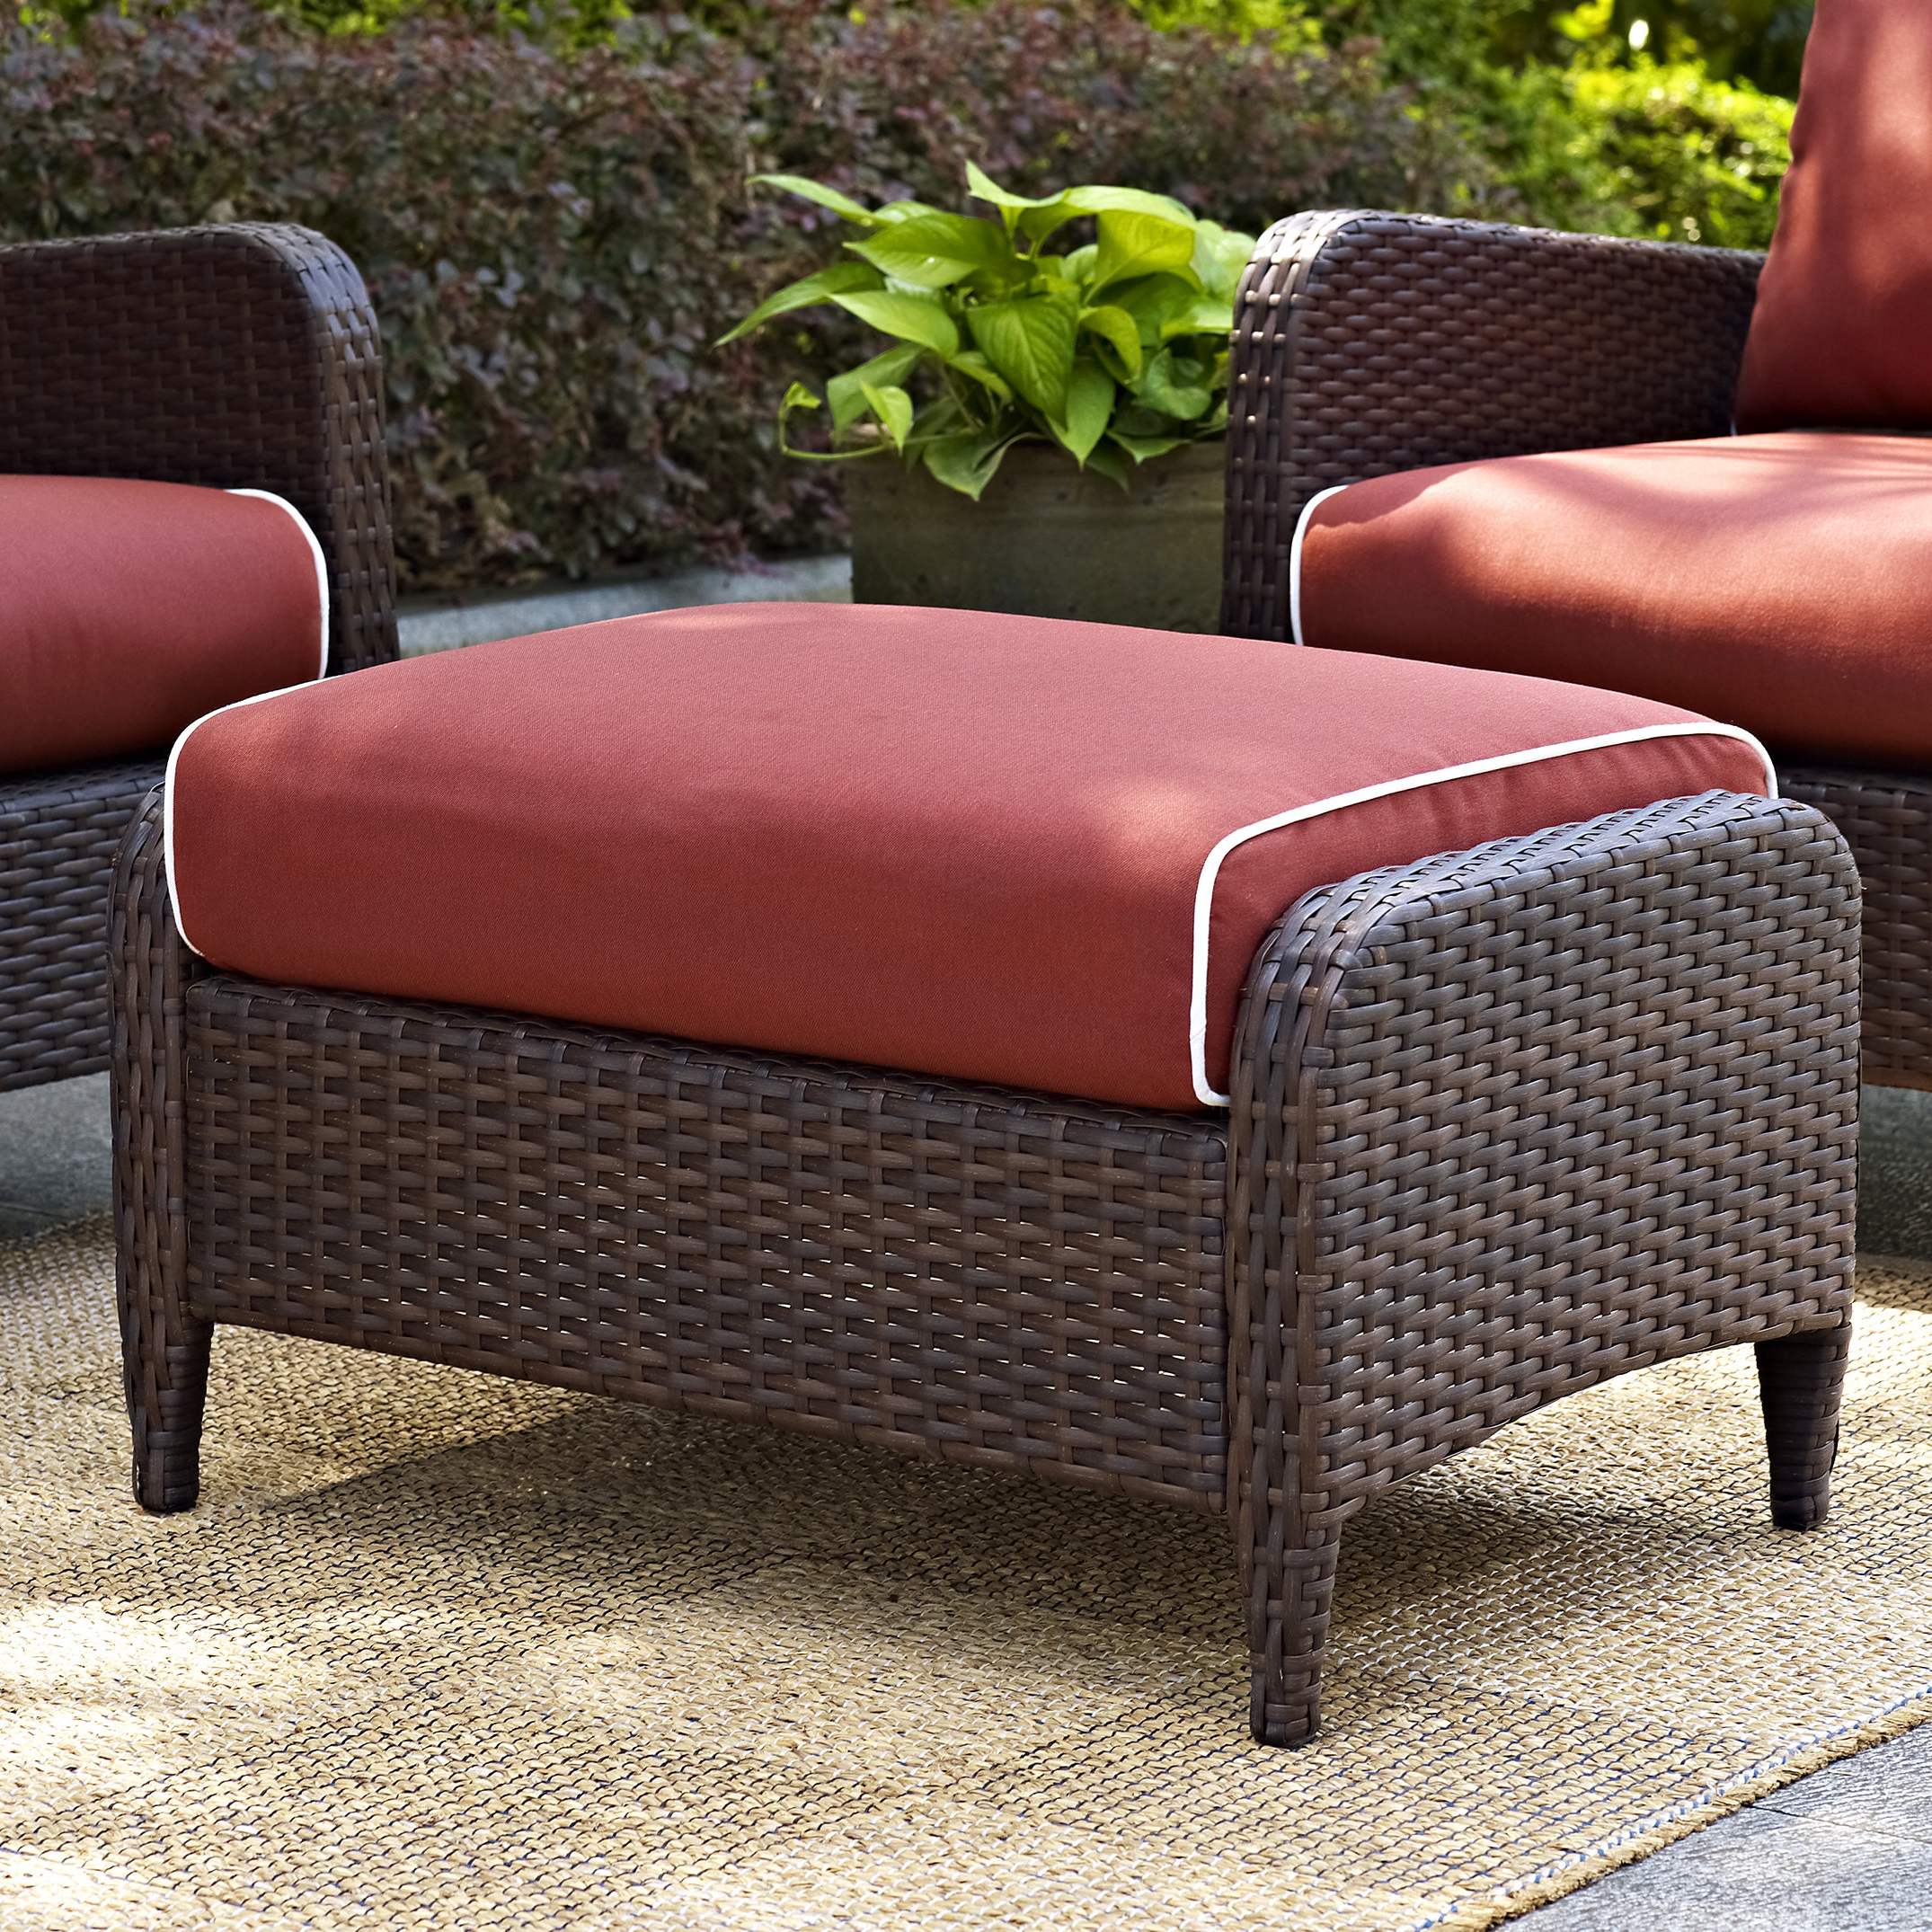 Avadi Outdoor Sofas & Ottomans 3 Piece Set Intended For Most Up To Date Mosca Ottoman With Cushion (Gallery 18 of 25)